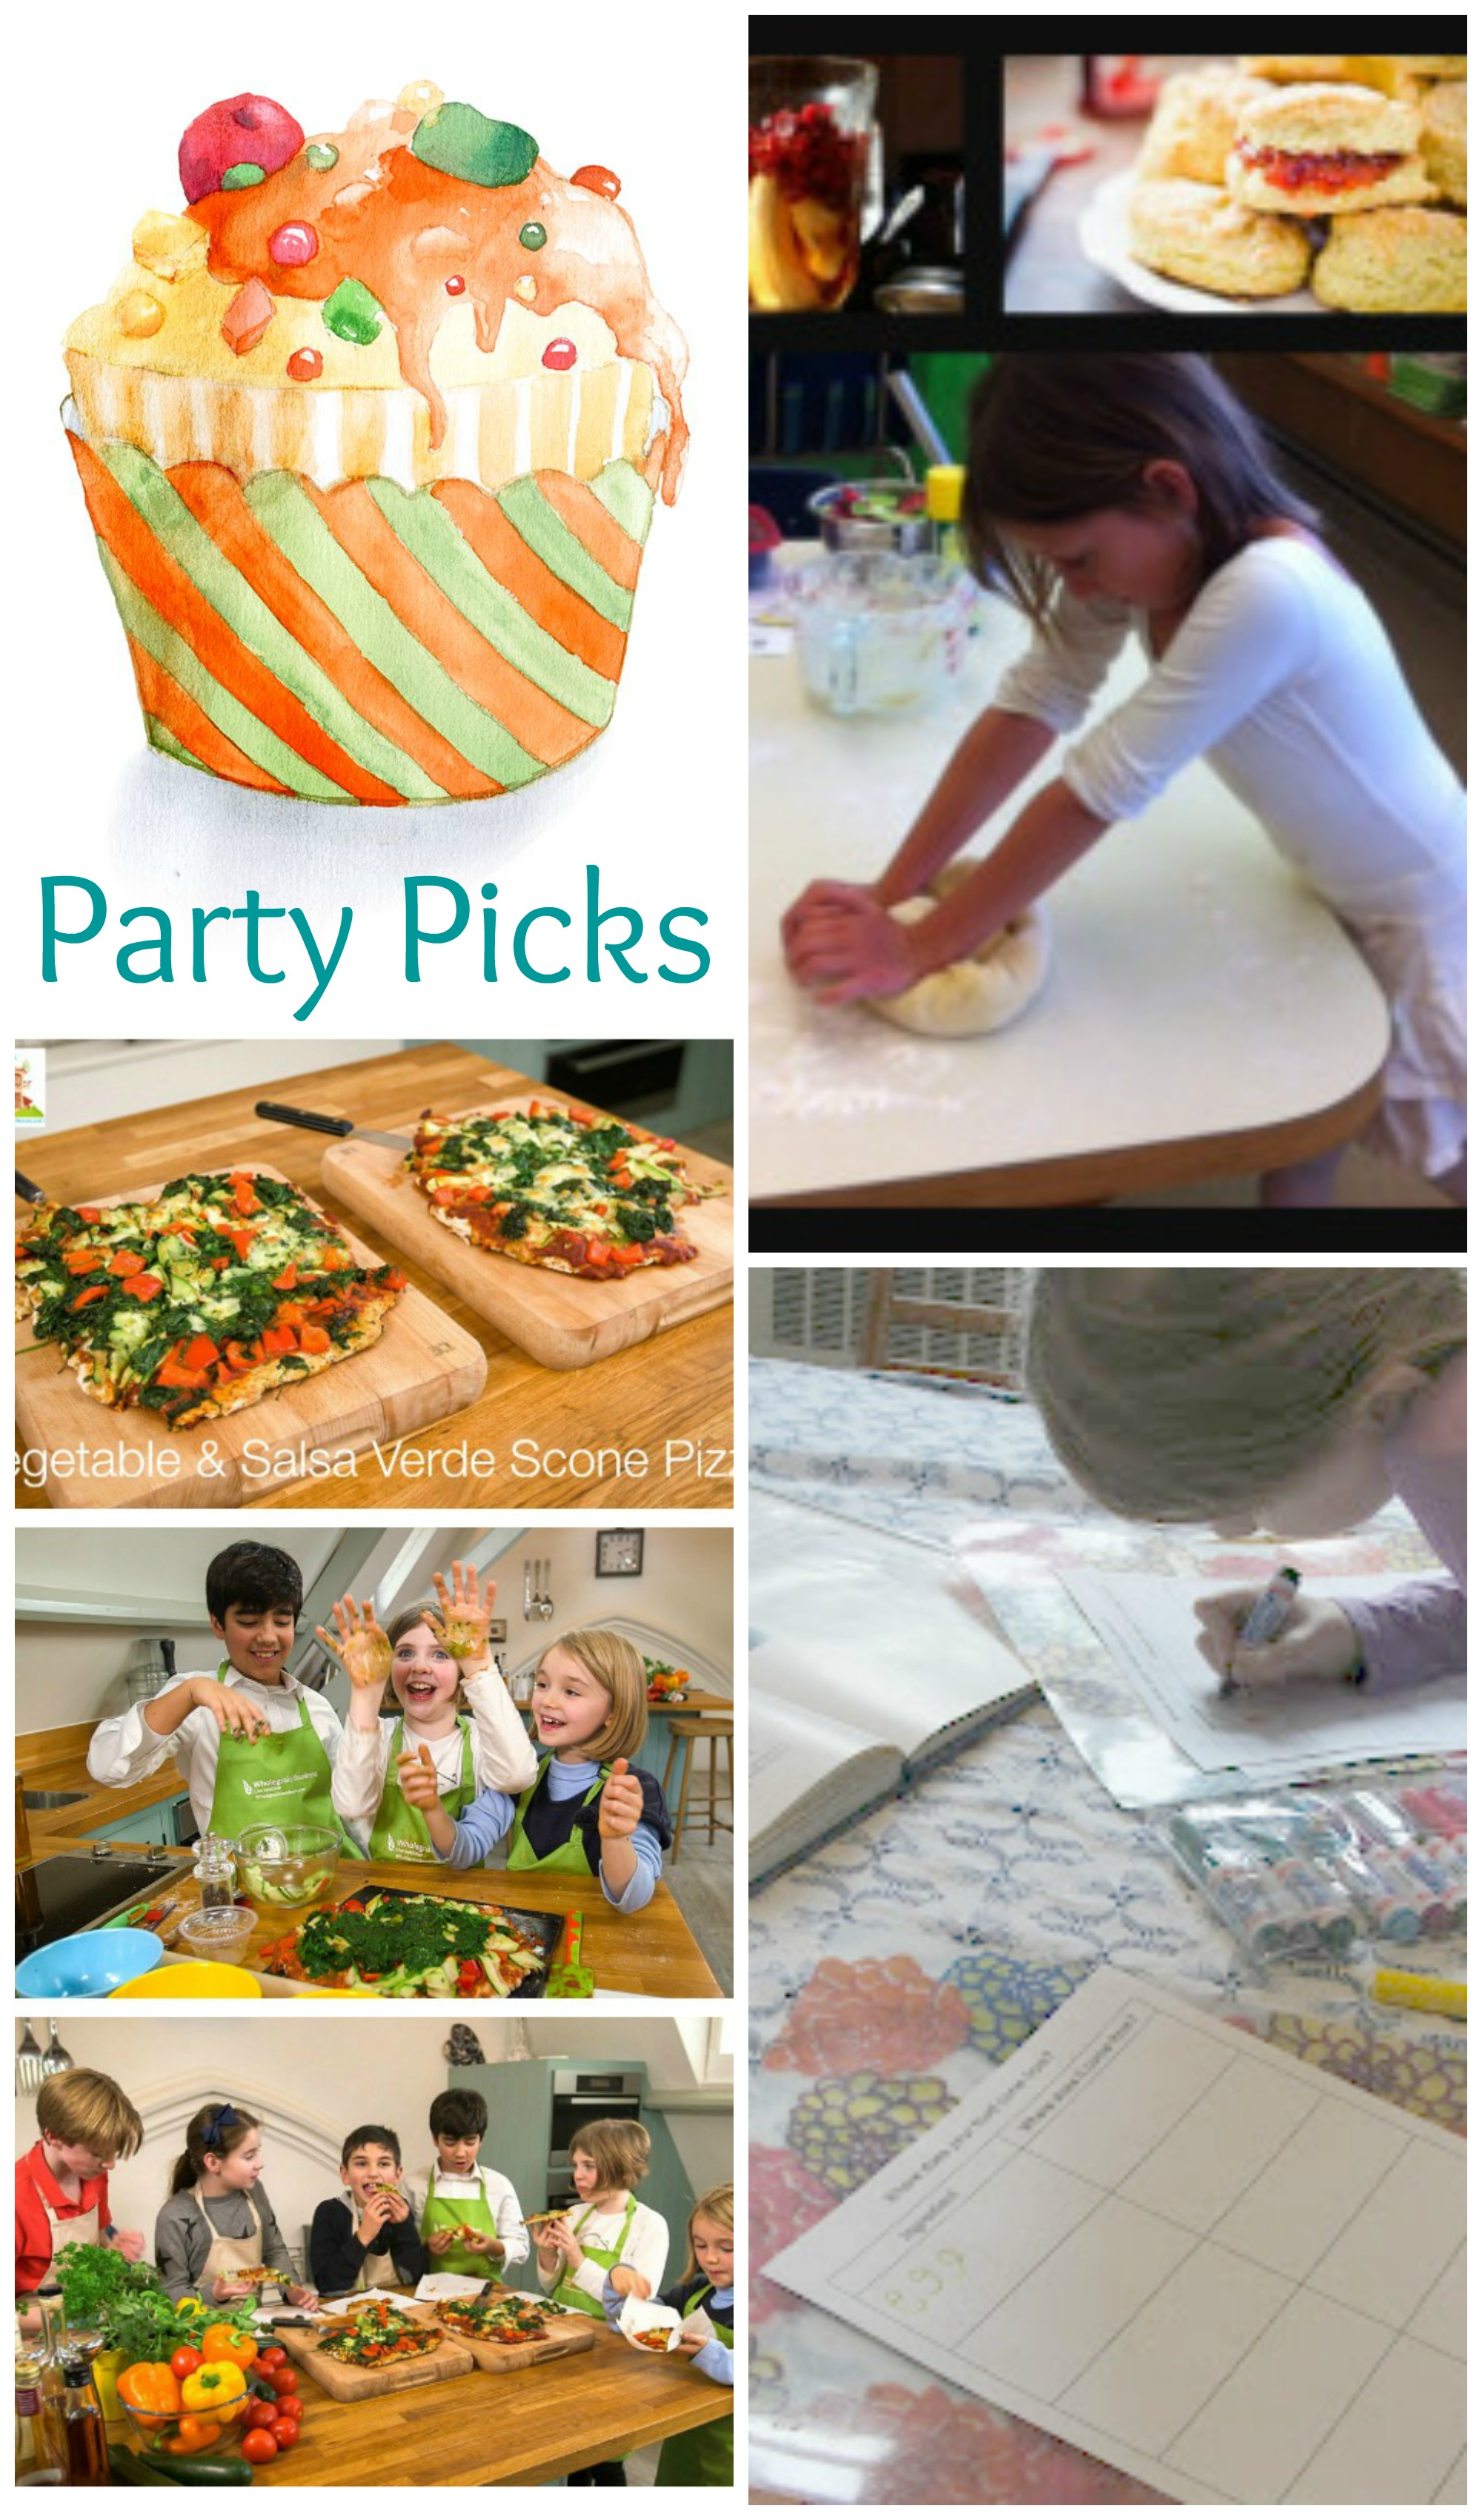 3 Great Way for Kids to Learn In The Kitchen